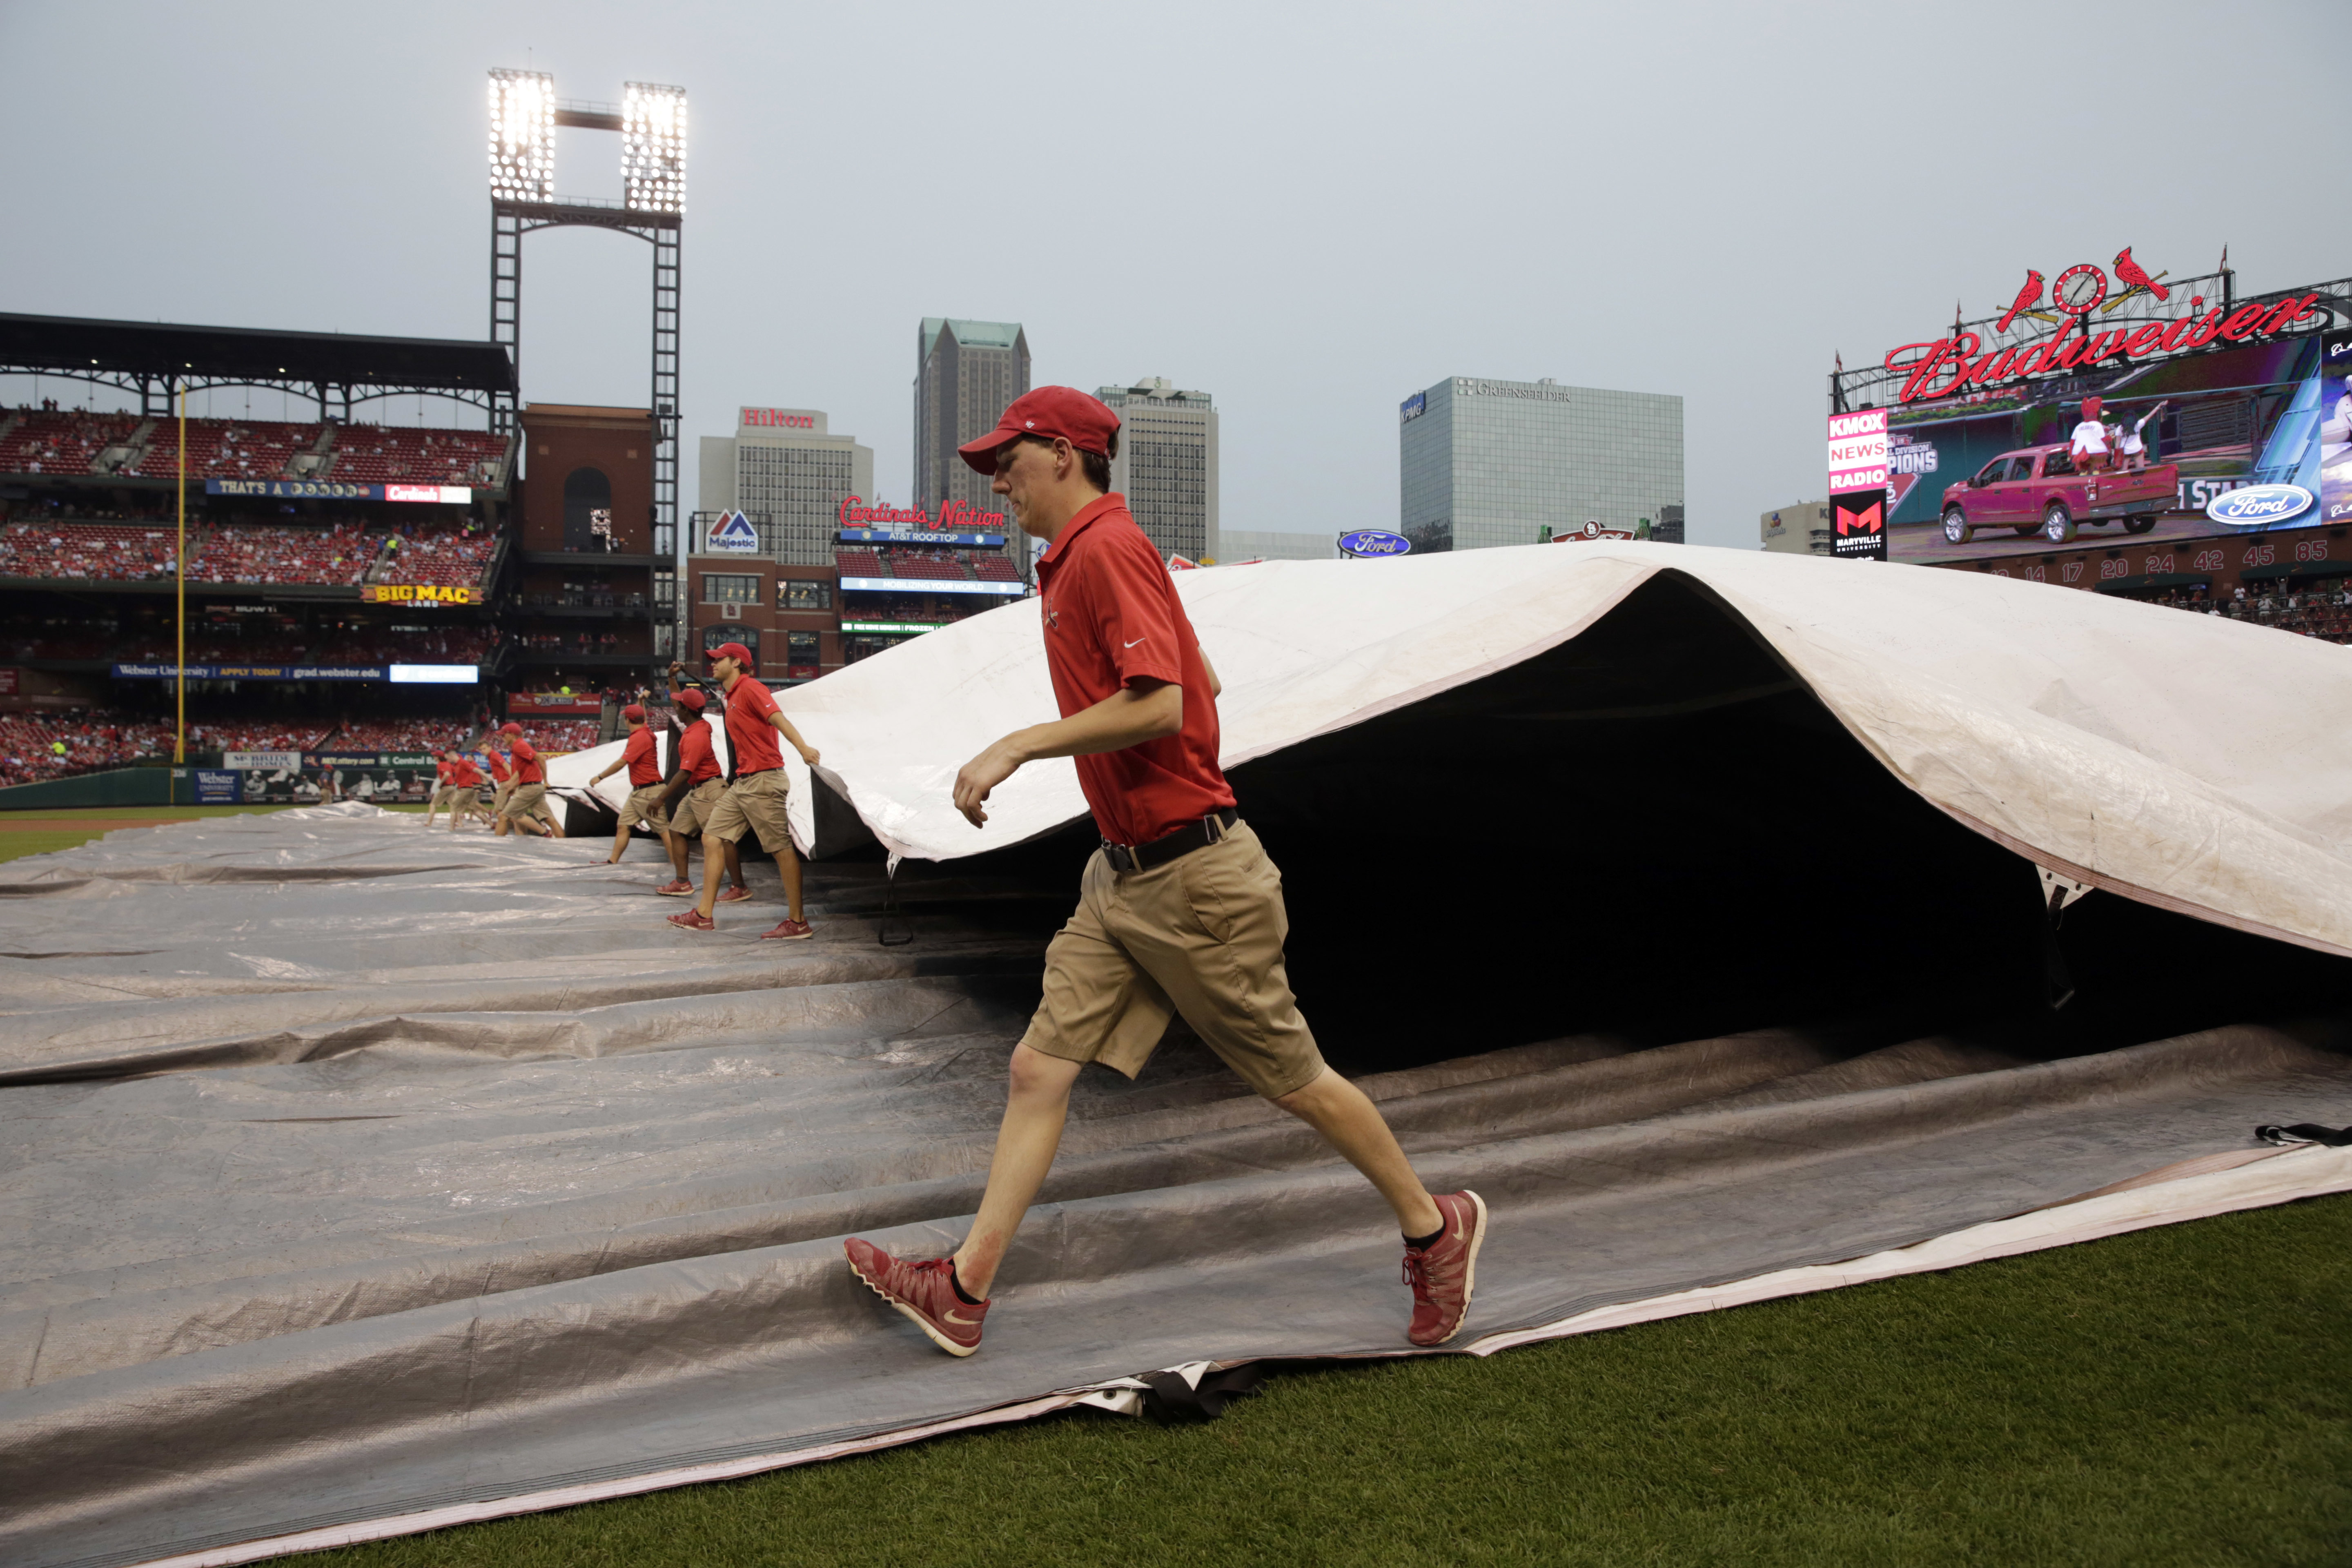 Members of the Busch Stadium grounds crew cover the field in anticipation of rain before the start of a baseball game between the St. Louis Cardinals and the San Diego Padres Tuesday, July 19, 2016, in St. Louis. (AP Photo/Jeff Roberson)